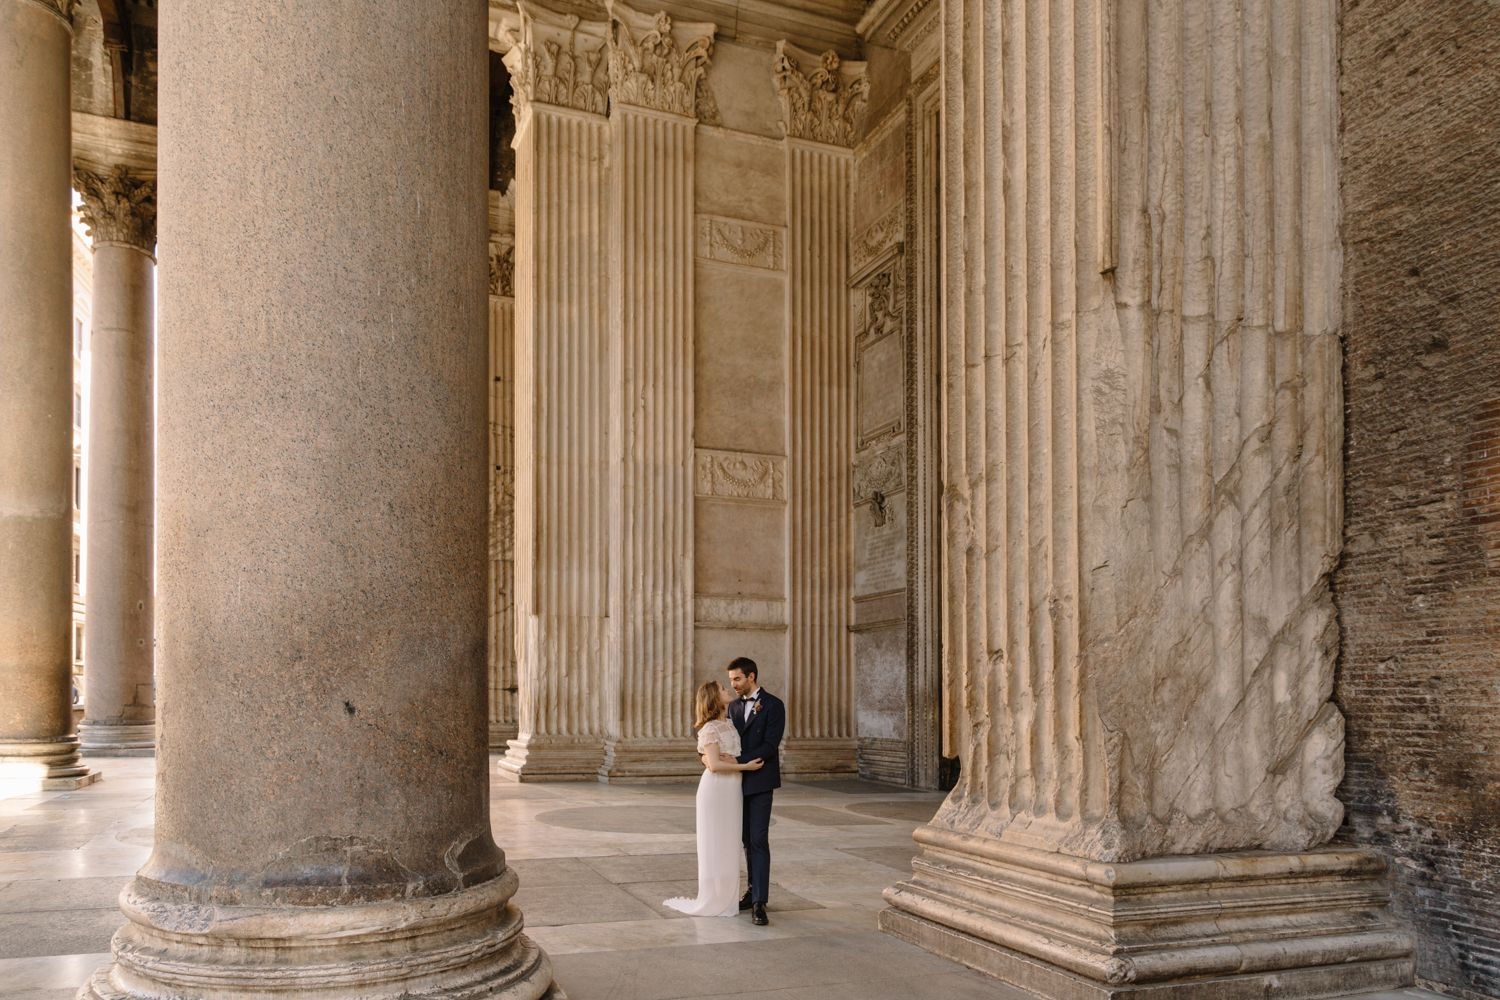 Elopement & Wedding Photo in Rome